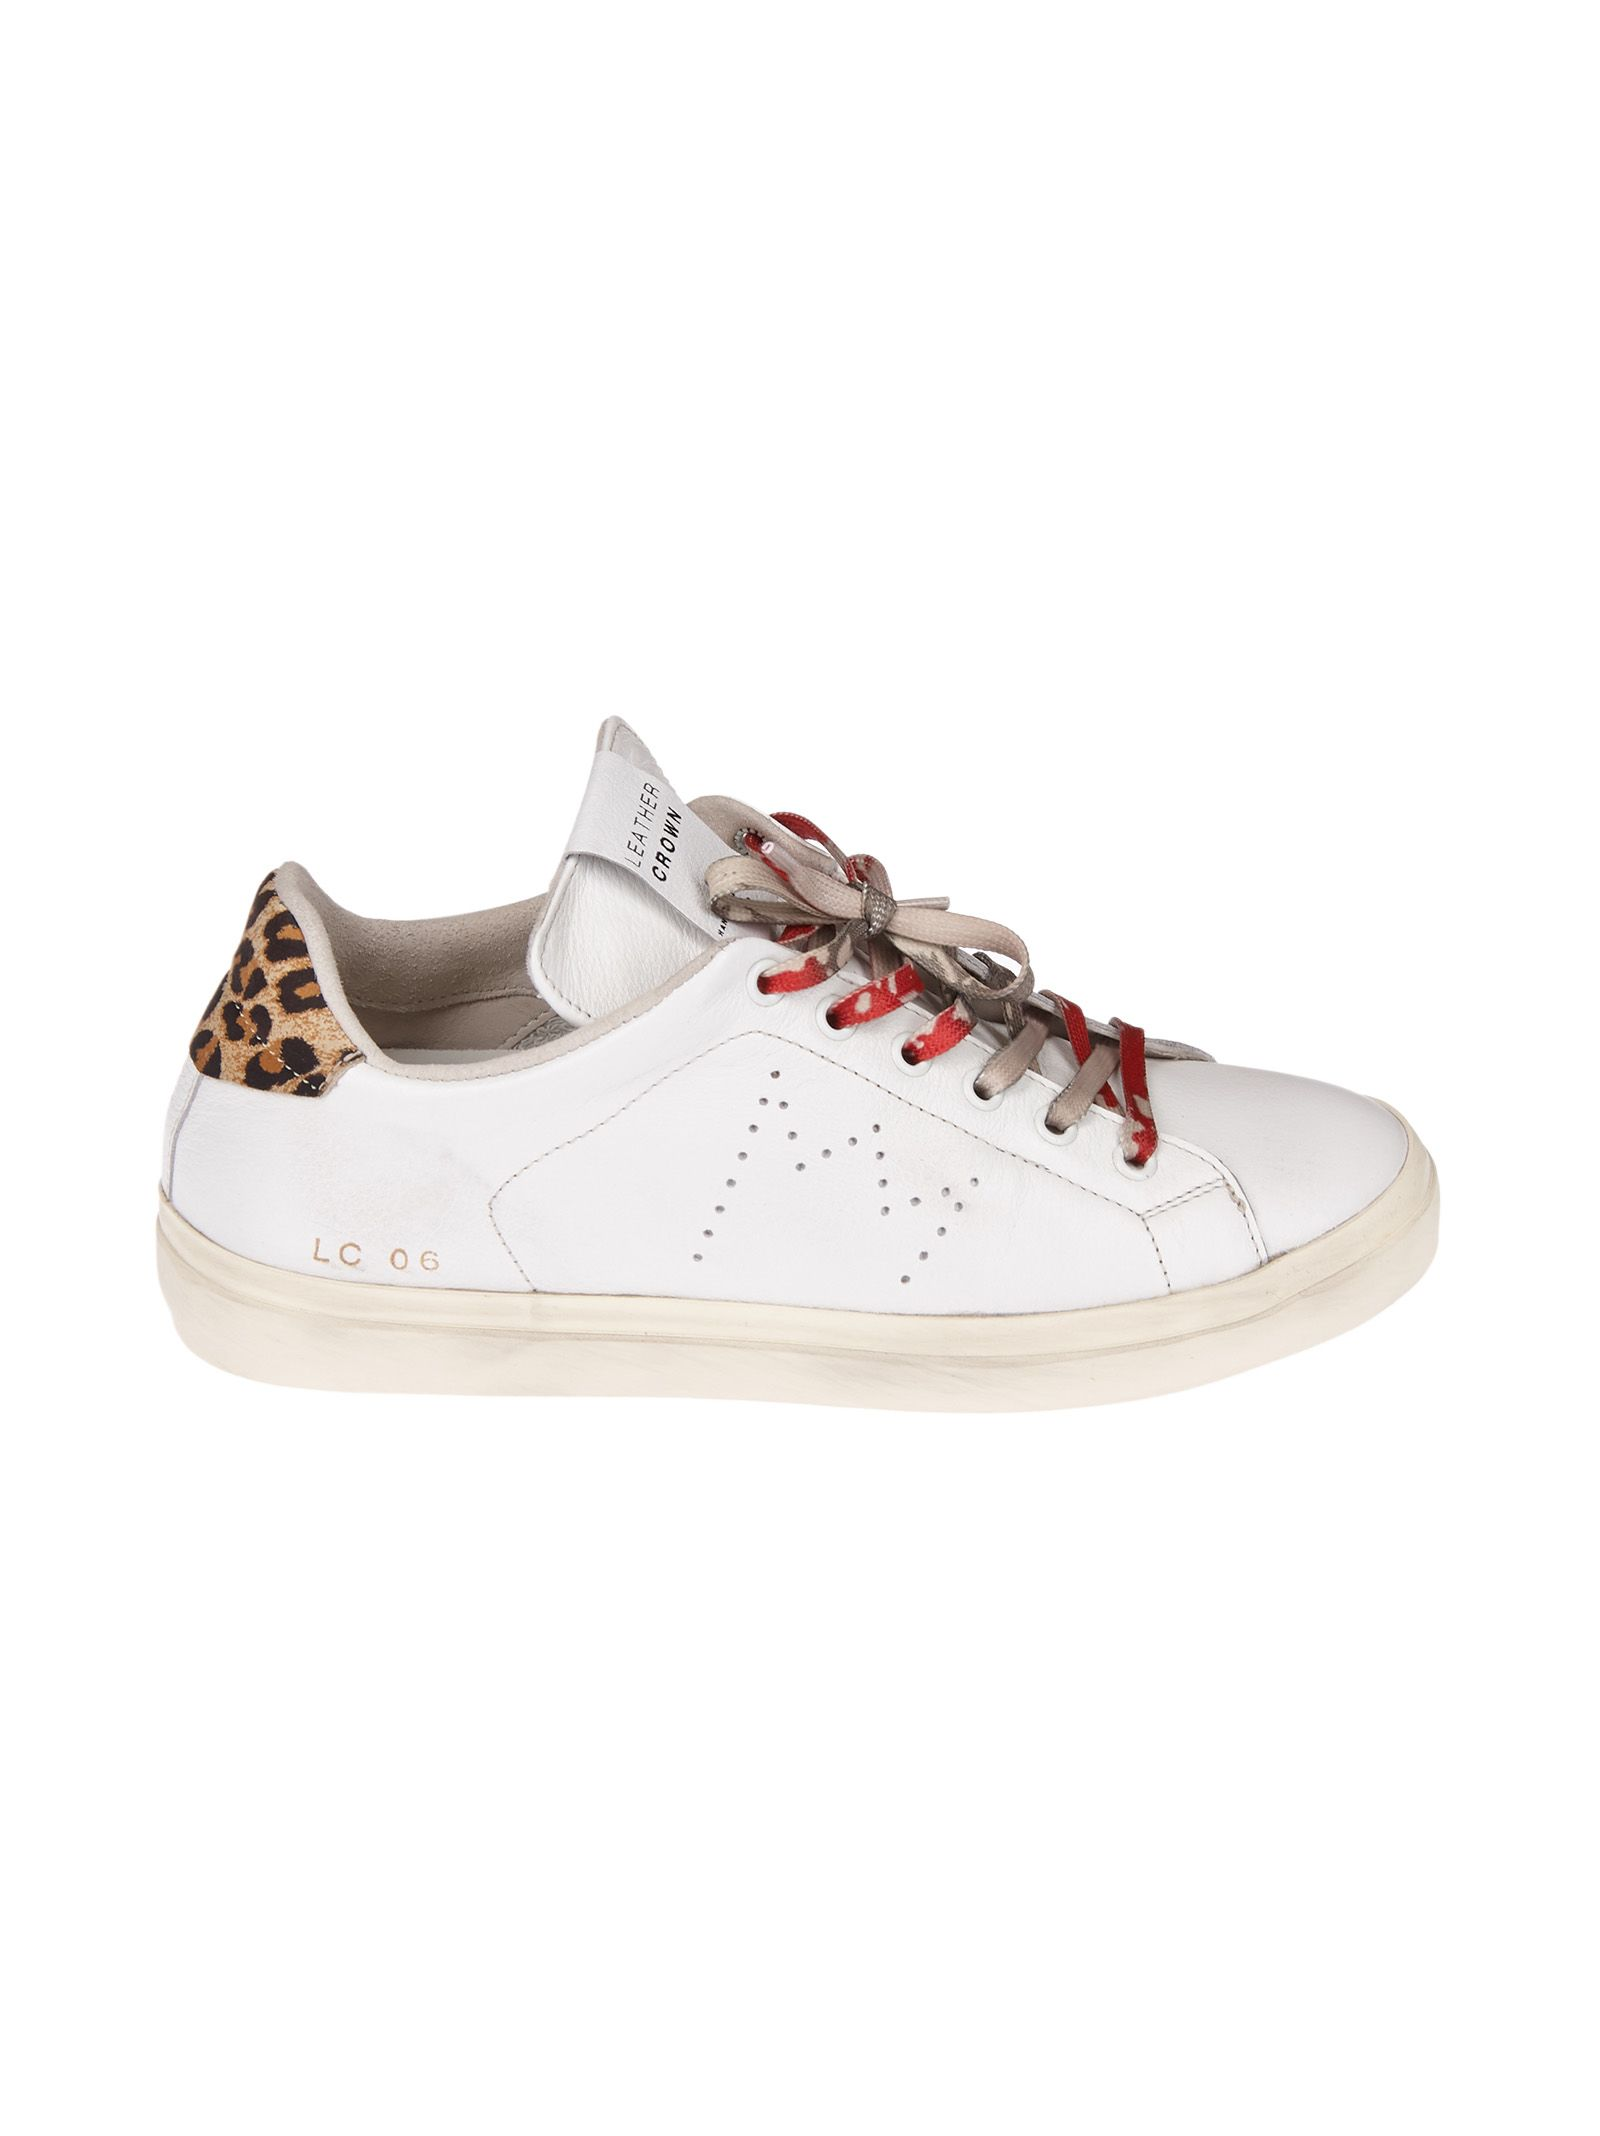 animal print sneakers - White Leather Crown ms4TnBHyR